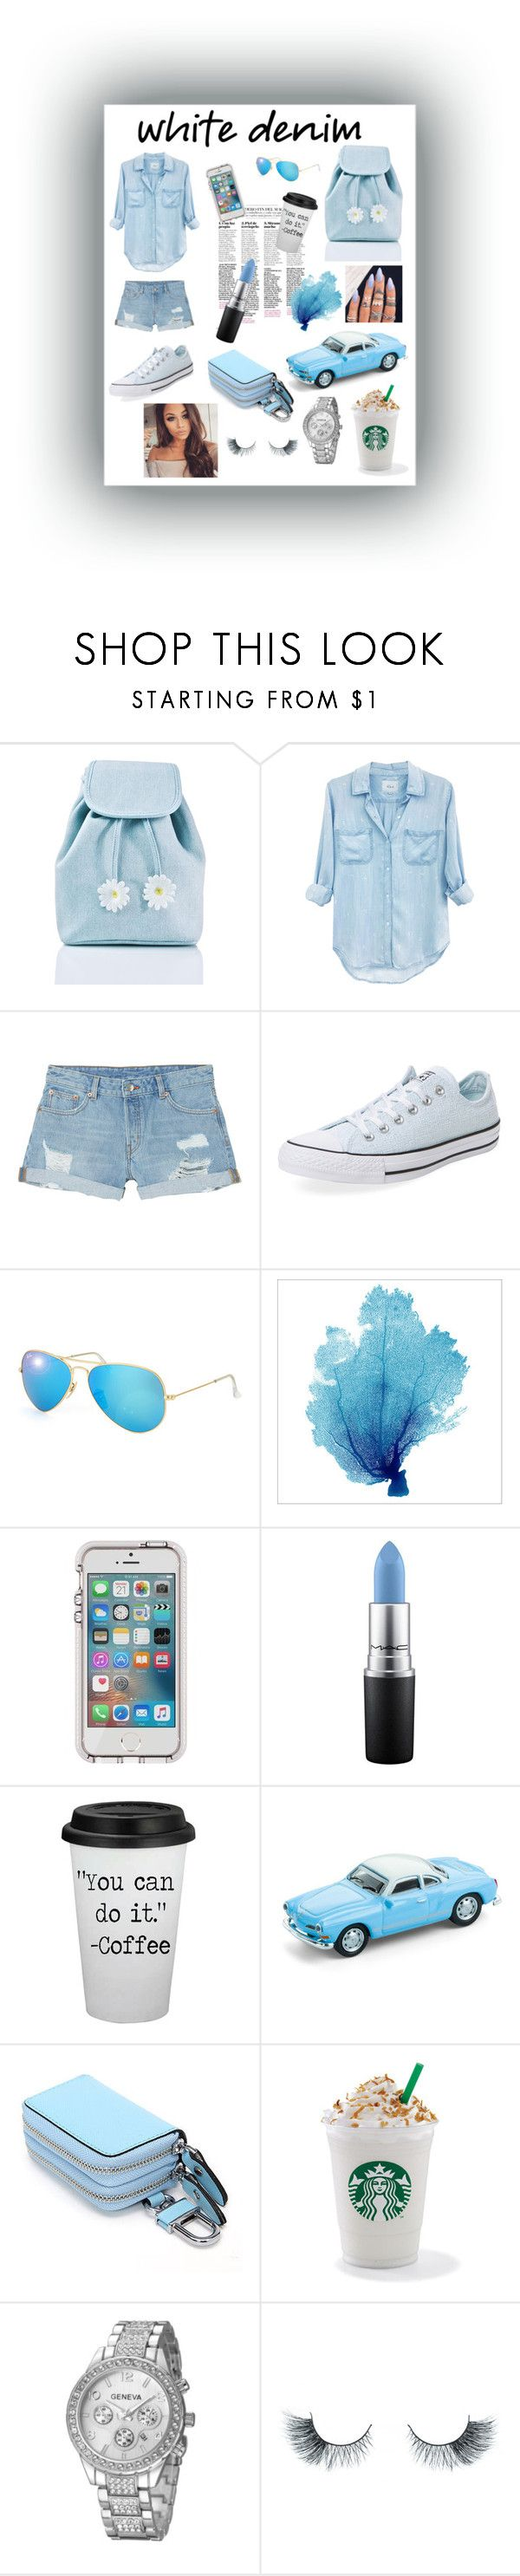 """White denim!💙"" by pizzapuppy19 ❤ liked on Polyvore featuring Sugarbaby, Rails, Monki, Converse, Ray-Ban, MAC Cosmetics and Unicorn Lashes"